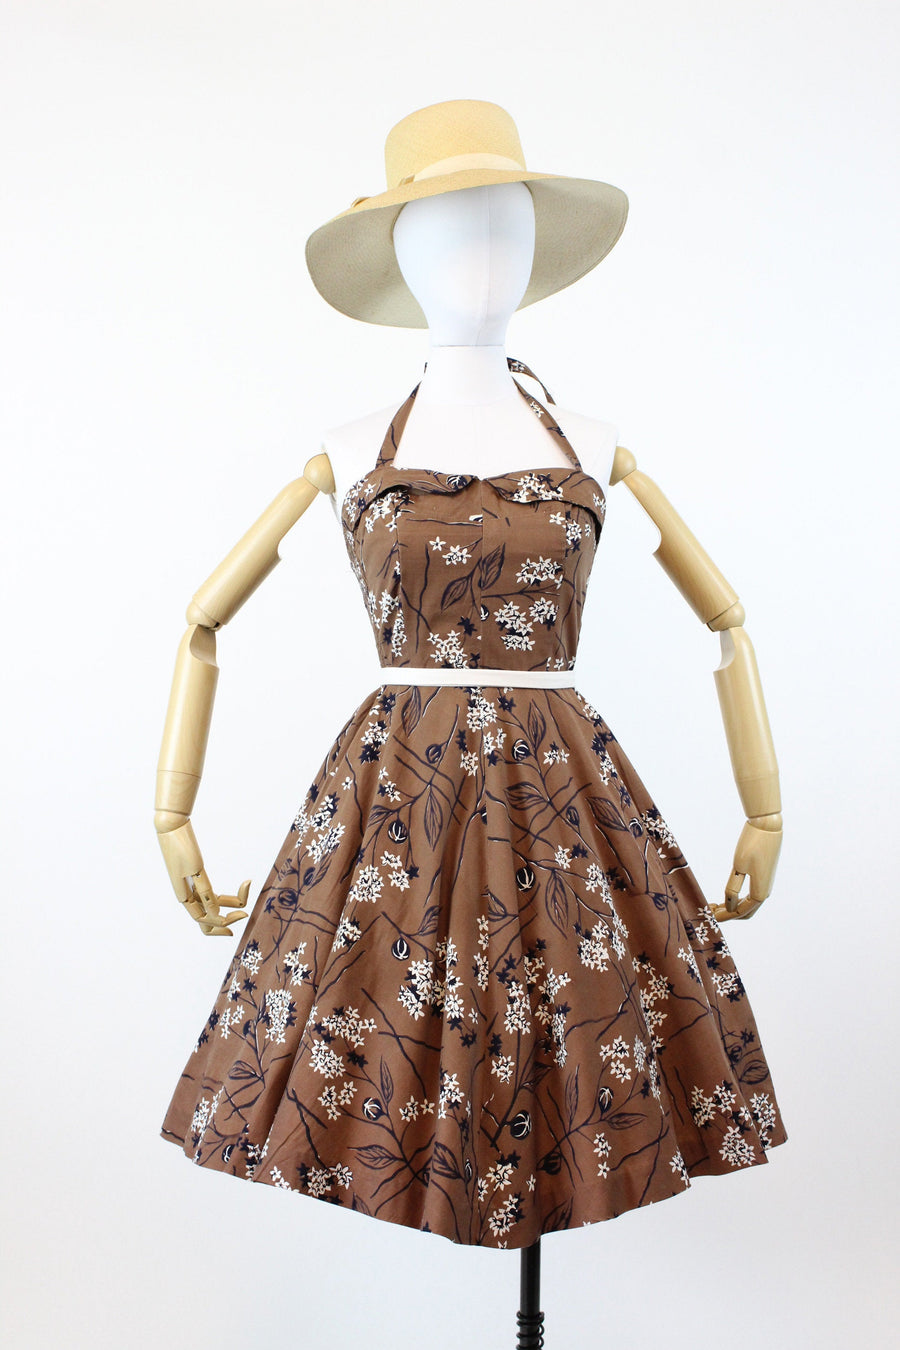 1950s hawaiian halter dress small medium | vintage cotton cherry blossom dress